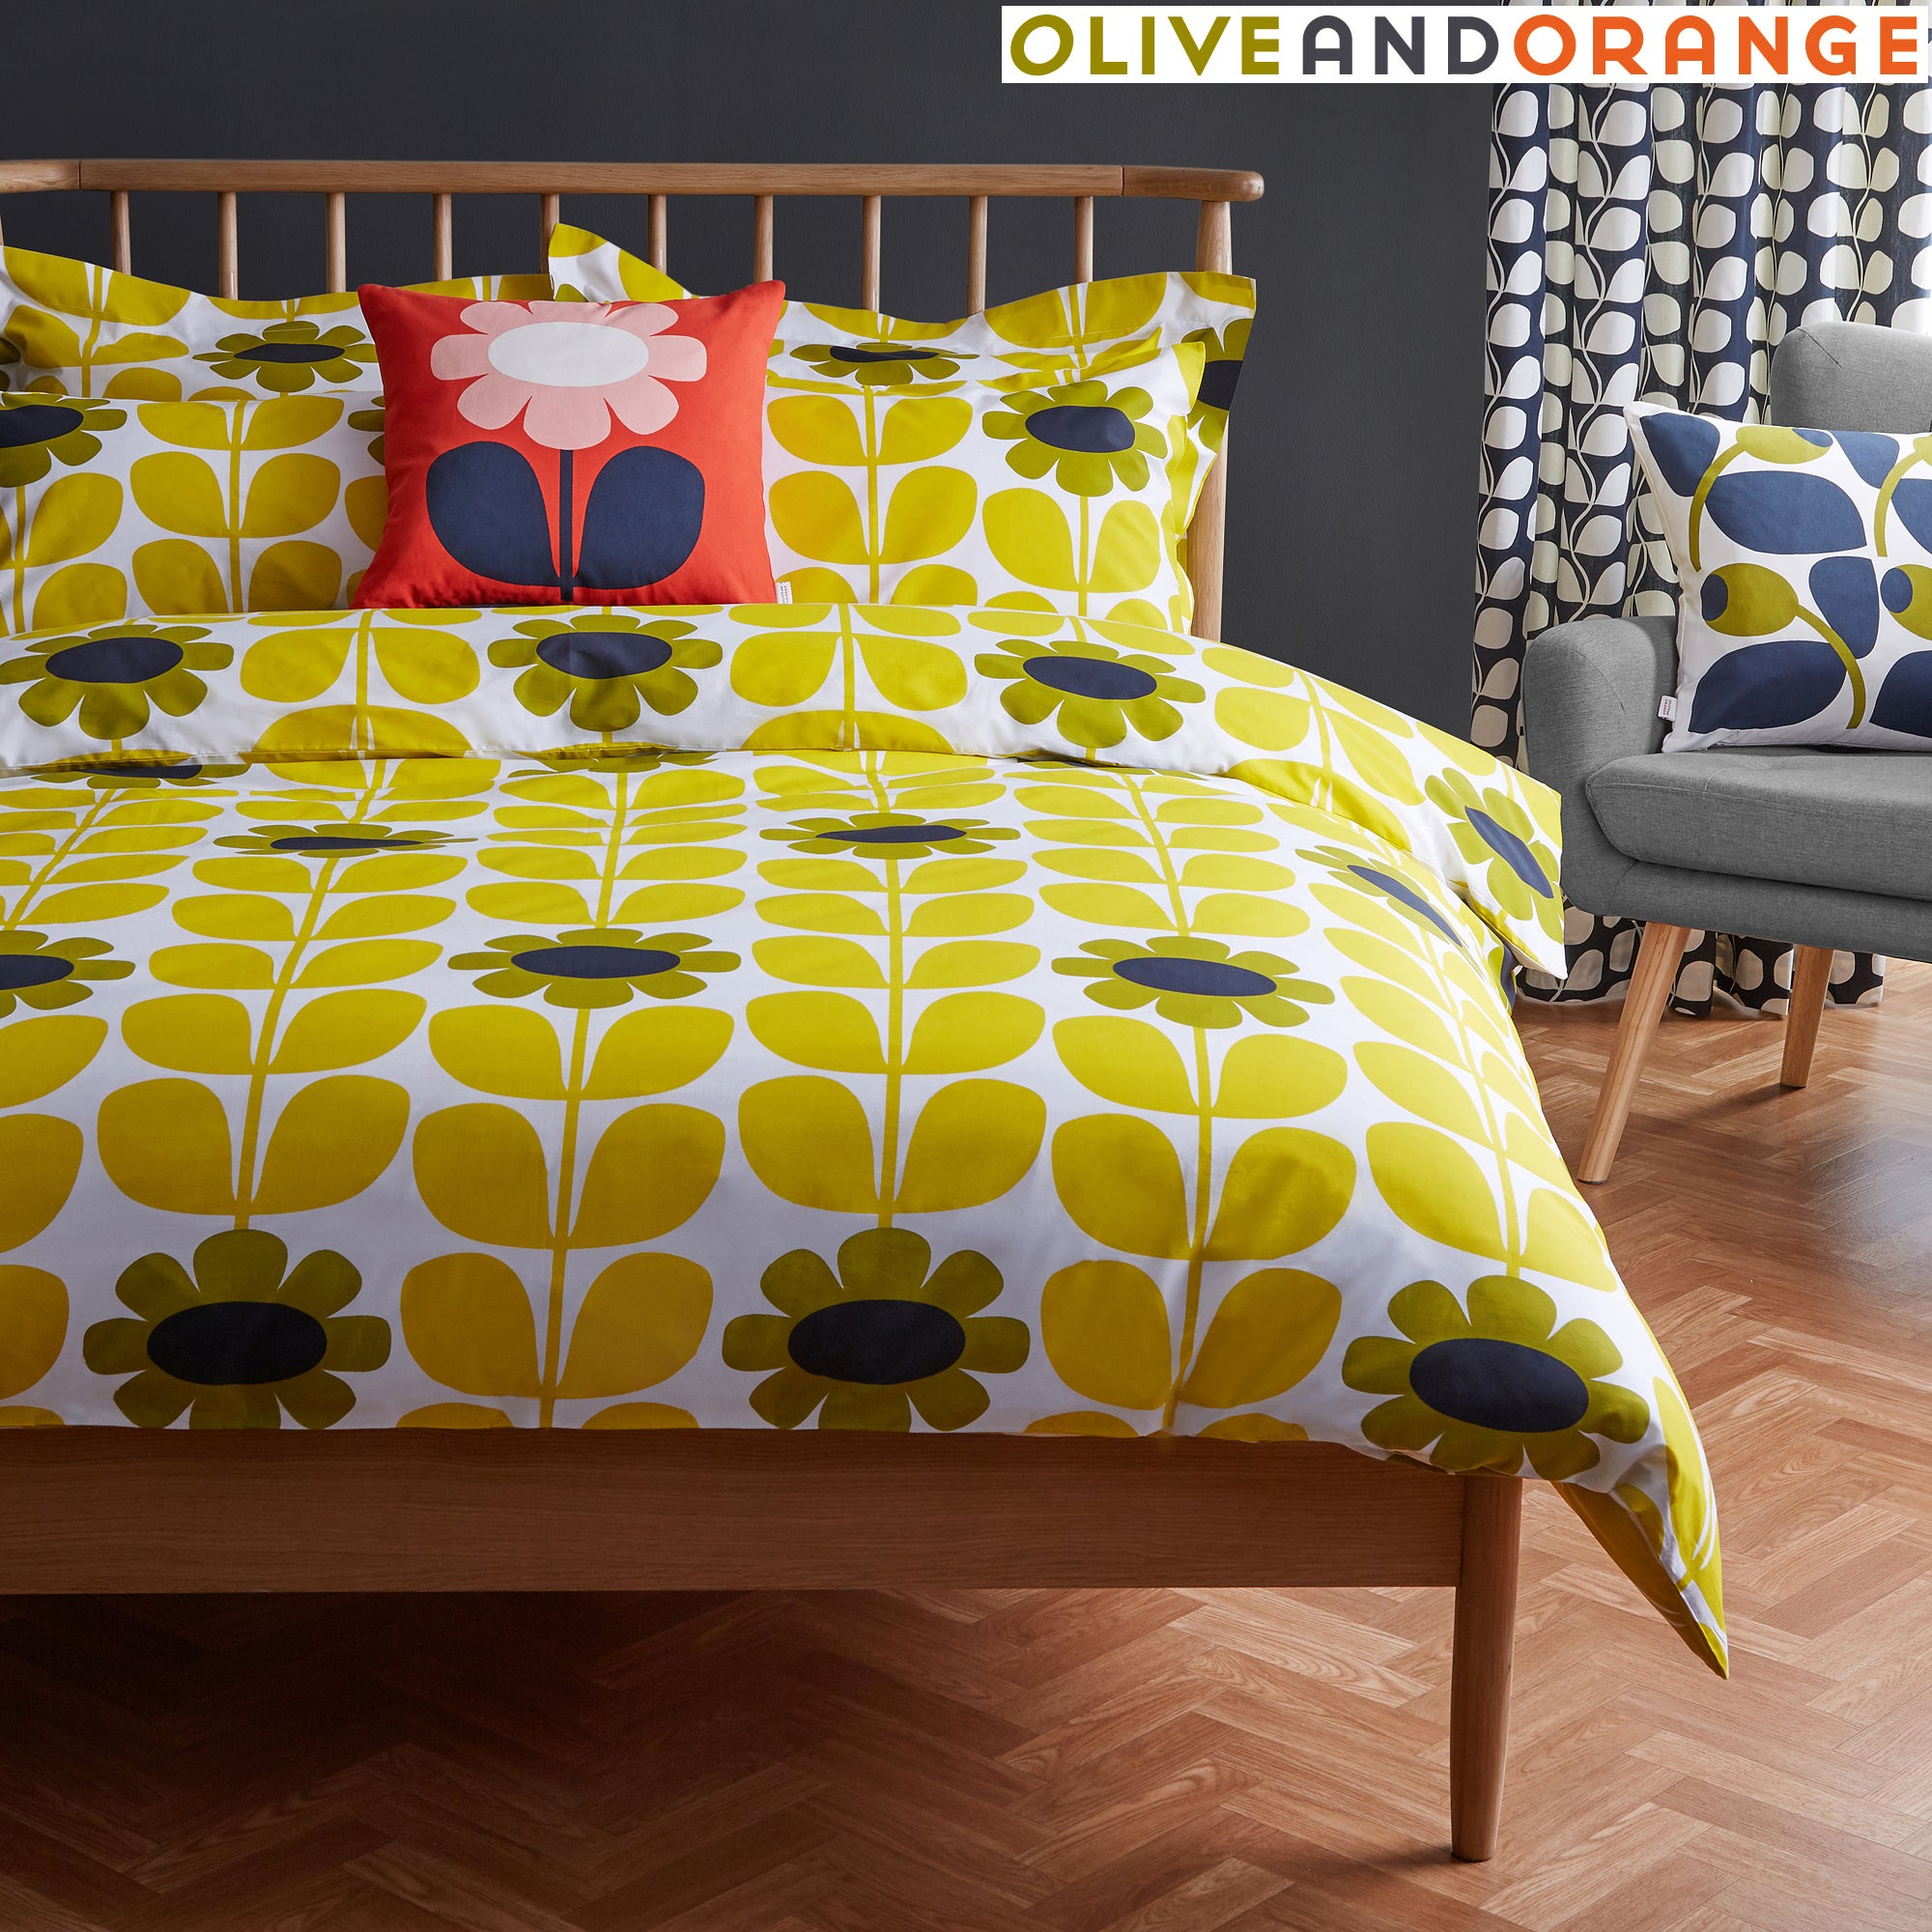 Image of Olive & Orange Tall Flower 100% Cotton Yellow Duvet Cover and Pillowcase Set Sunflower (Yellow)